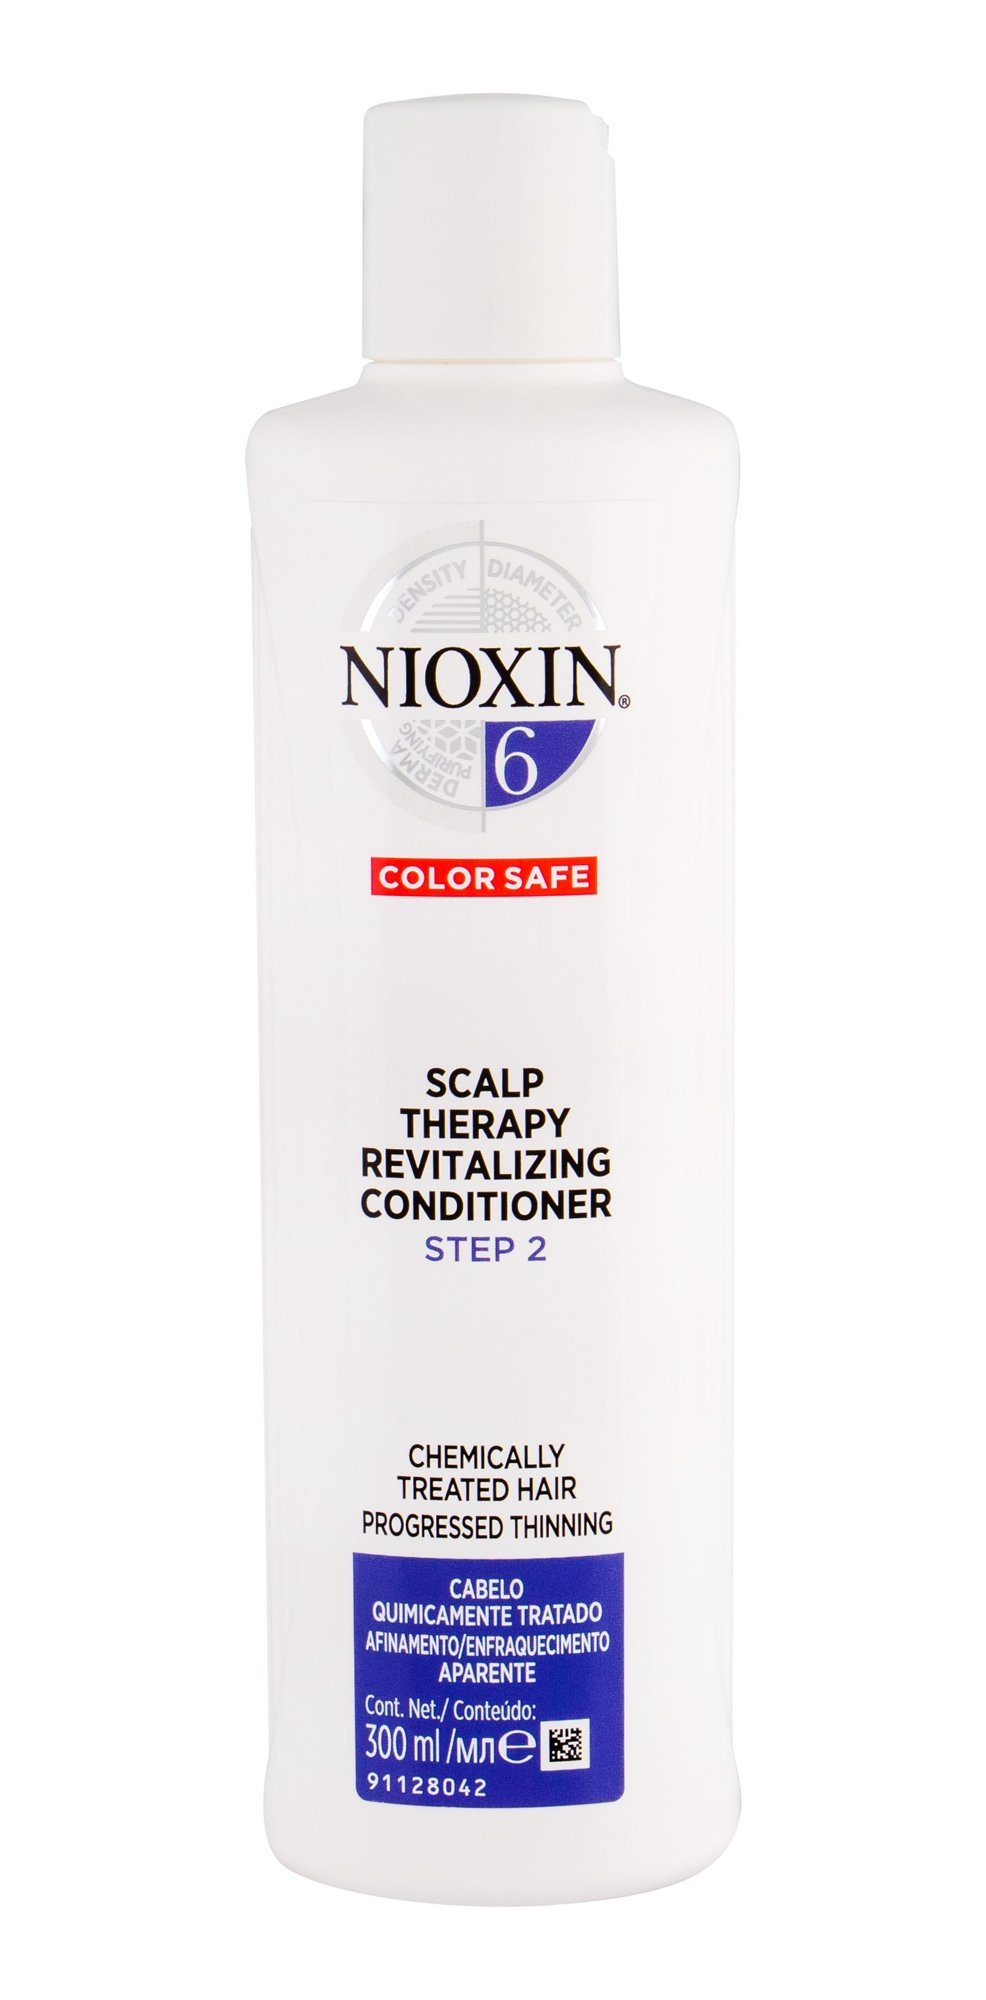 Nioxin System 6 Conditioner 300ml  Scalp Therapy